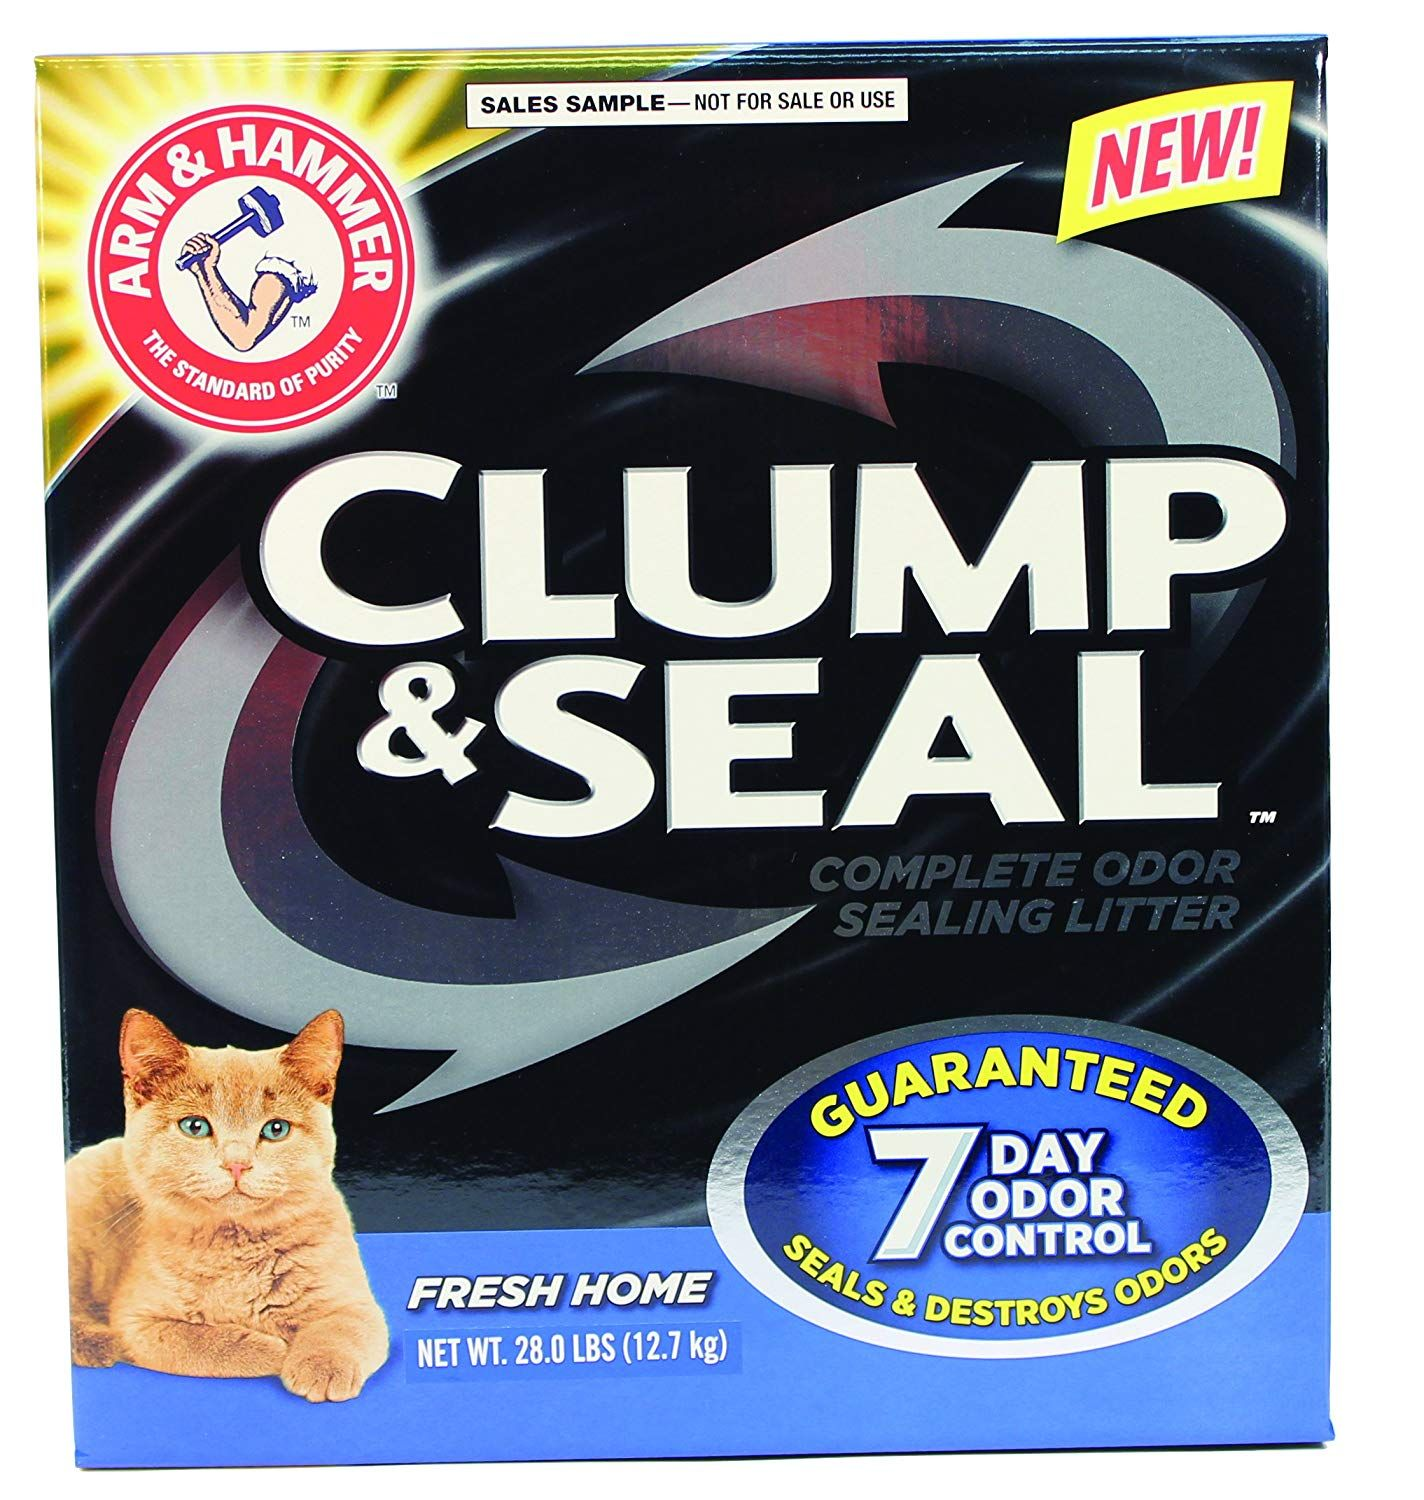 Cat Litter Clump /& Poop Bags Unscented Large to Fit Any Scoop Handles to Conveniently Tie Seal in Odors Boxiecat Scoop /& Tie Litter Bags Leakproof